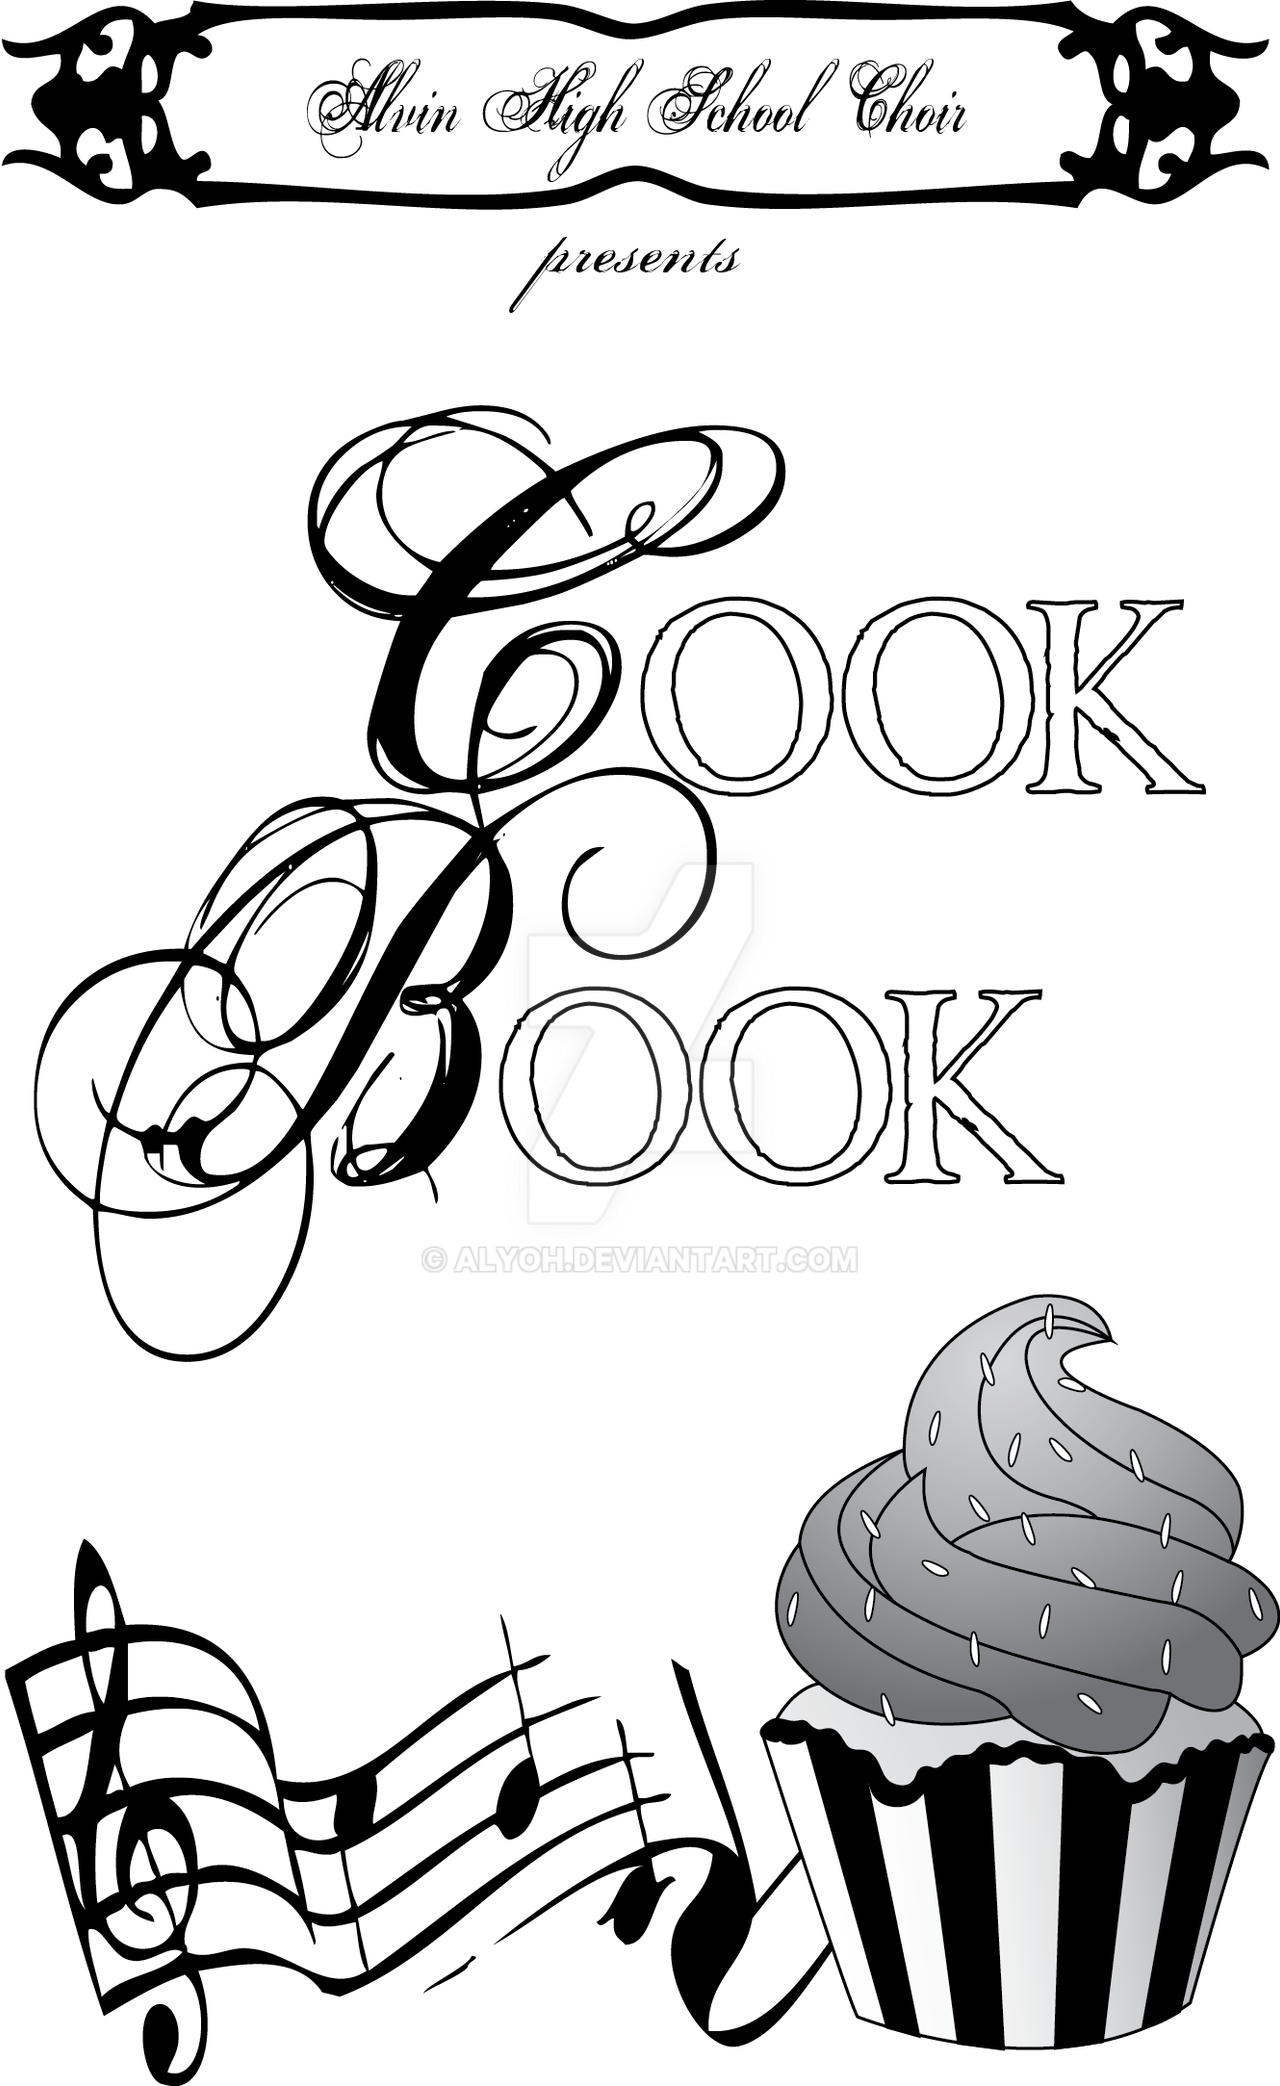 Cookbook Cover Coloring Page : Choir cookbook cover by alyoh on deviantart